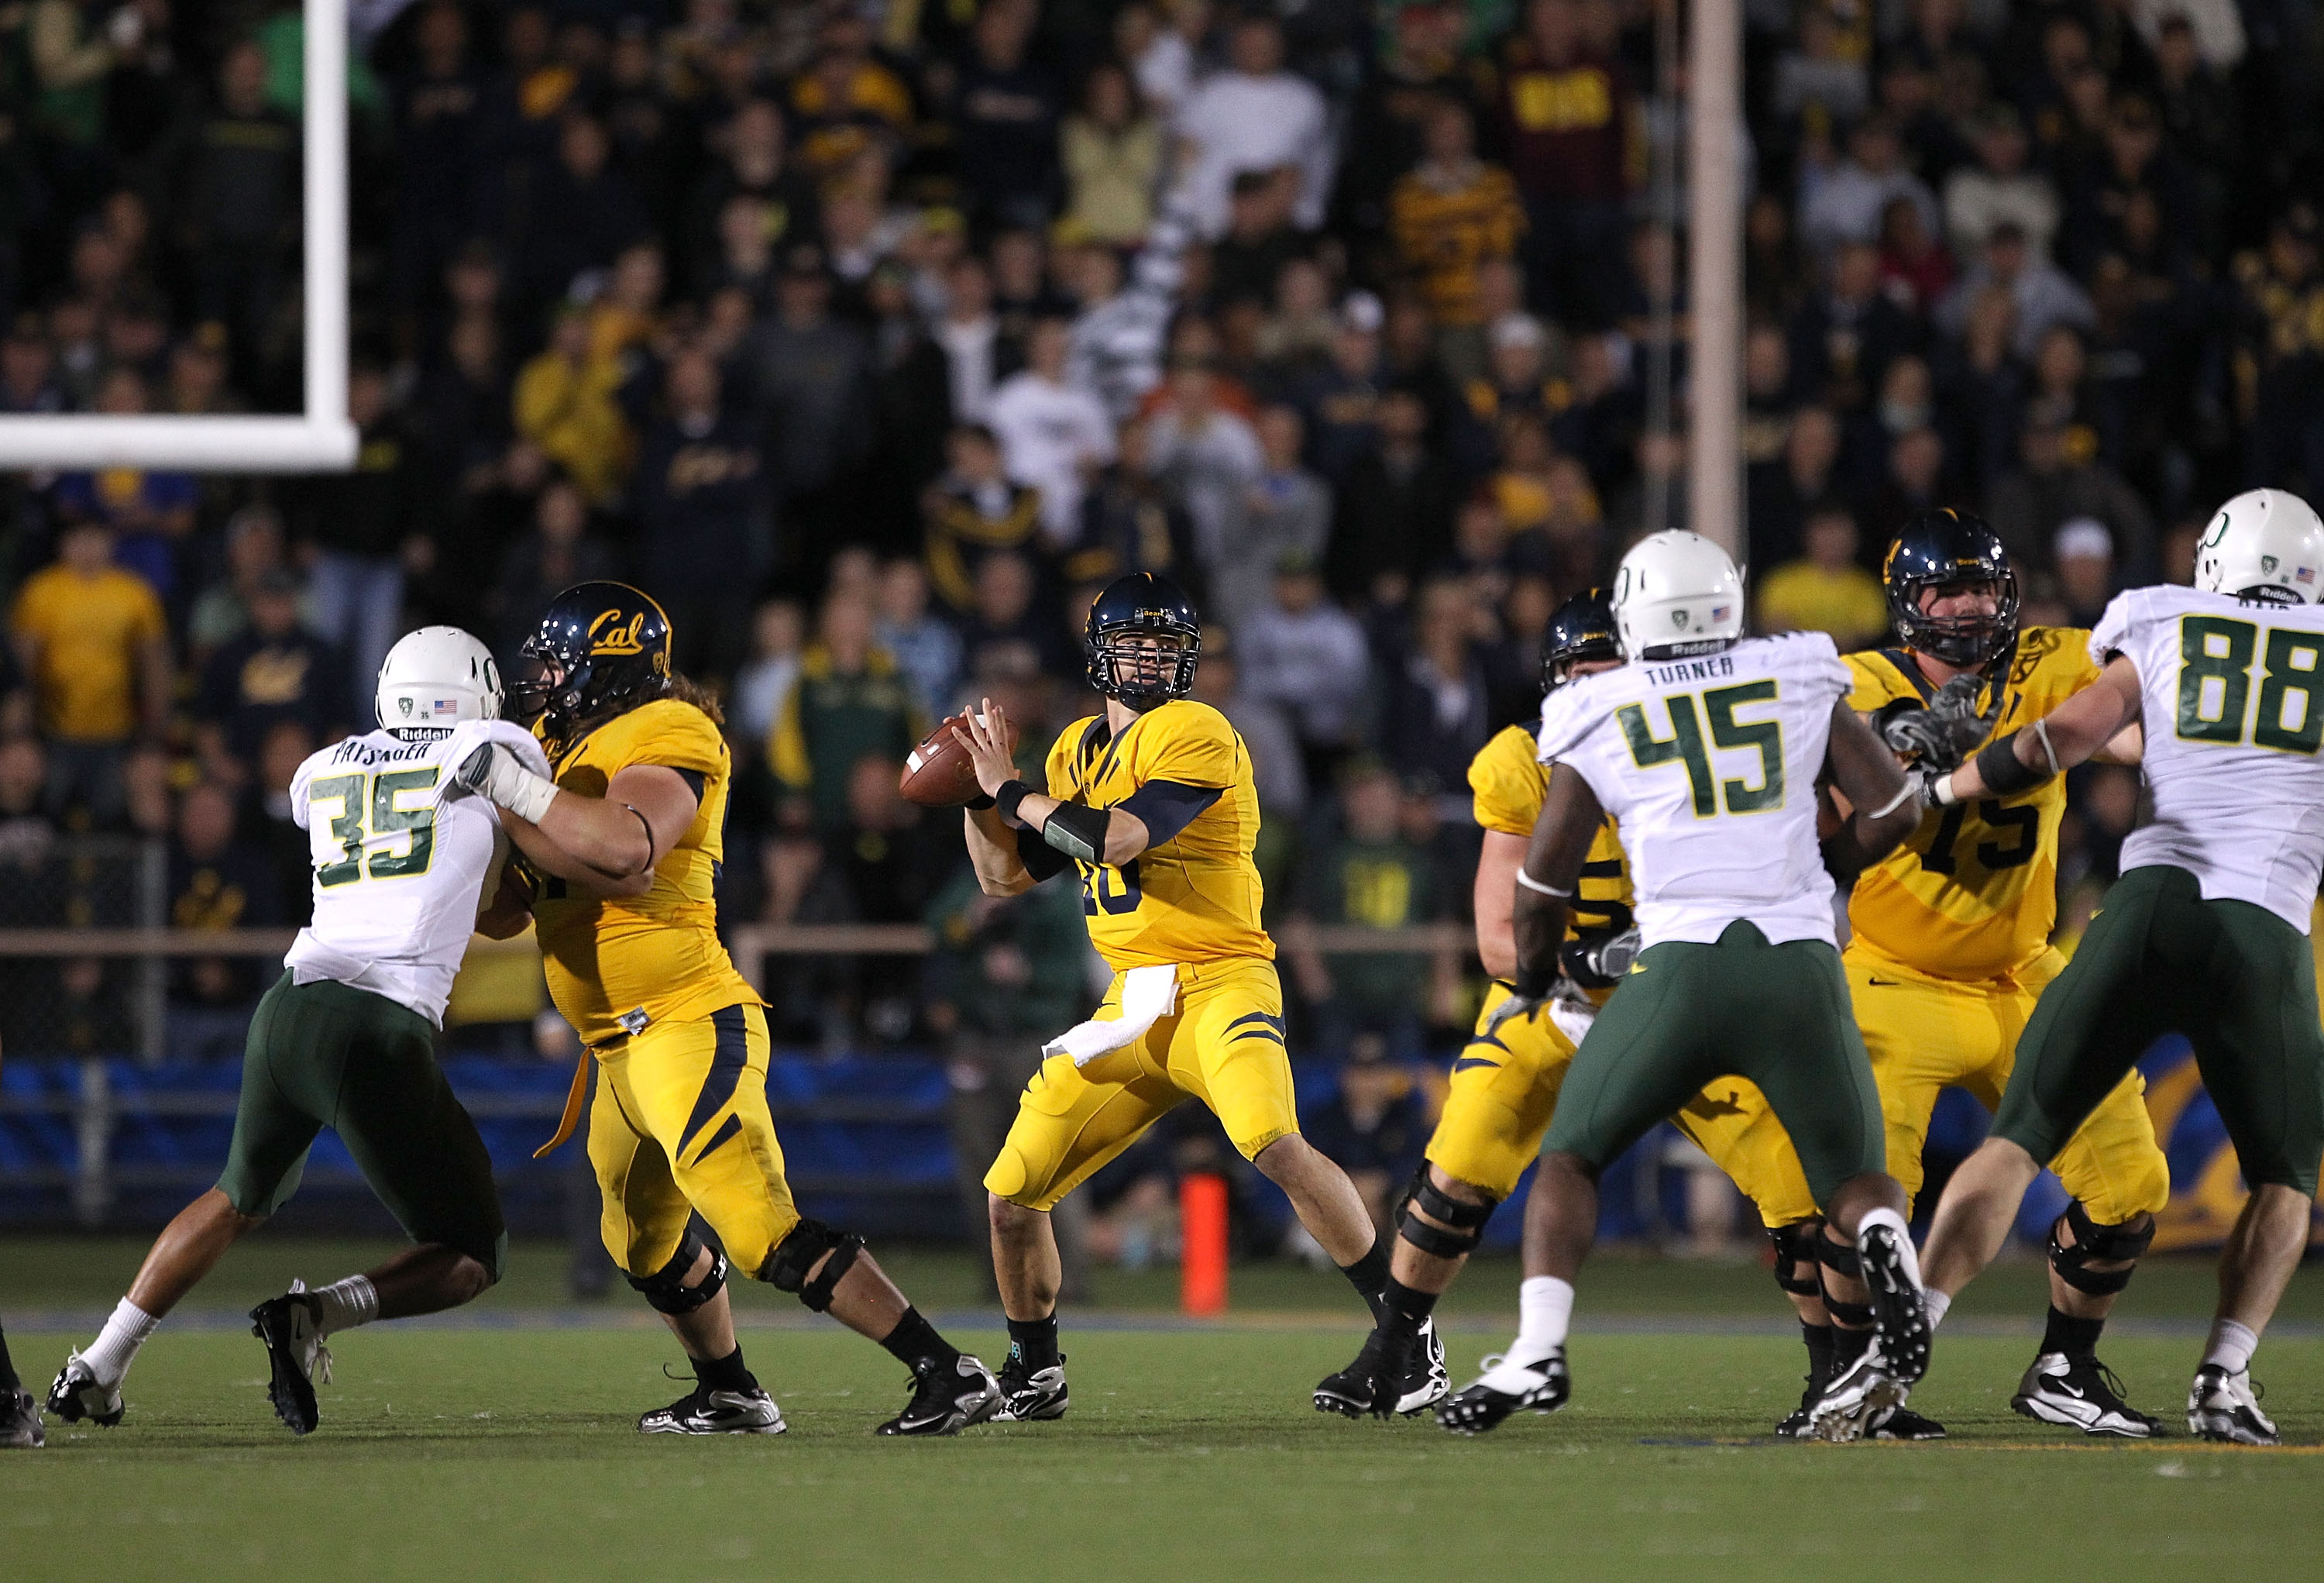 BERKELEY, CA - NOVEMBER 13:  Brock Mansion #10 of the California Golden Bears in action against the Oregon Ducks at California Memorial Stadium on November 13, 2010 in Berkeley, California.  (Photo by Ezra Shaw/Getty Images)